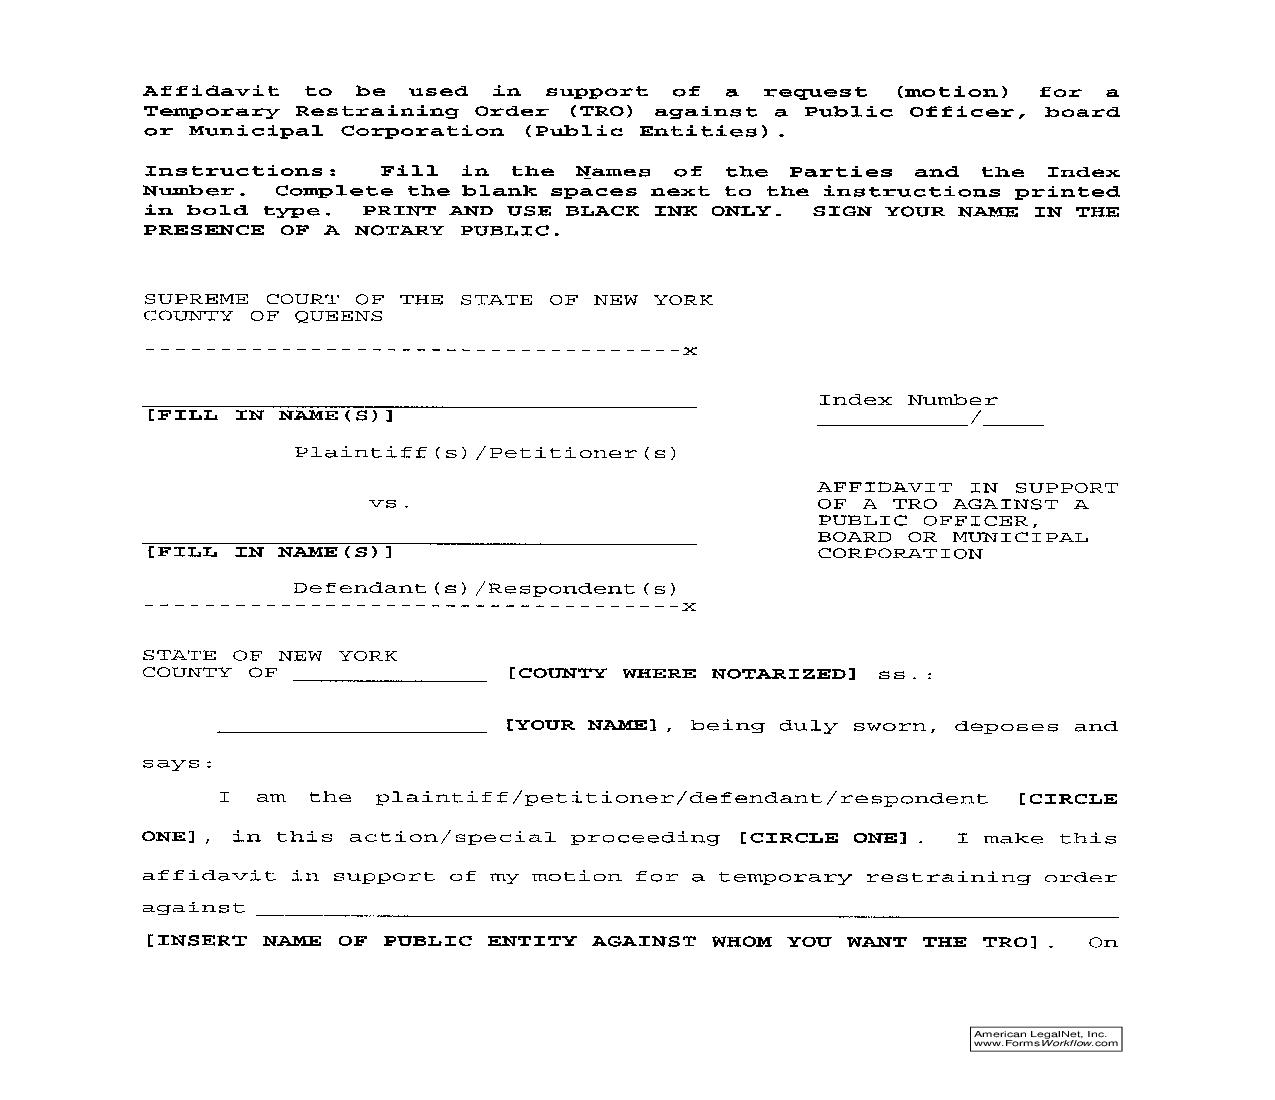 Affidavit In Support Of TRO Against Public Officer-Board-Municipal Corporation | Pdf Fpdf Doc Docx | New York